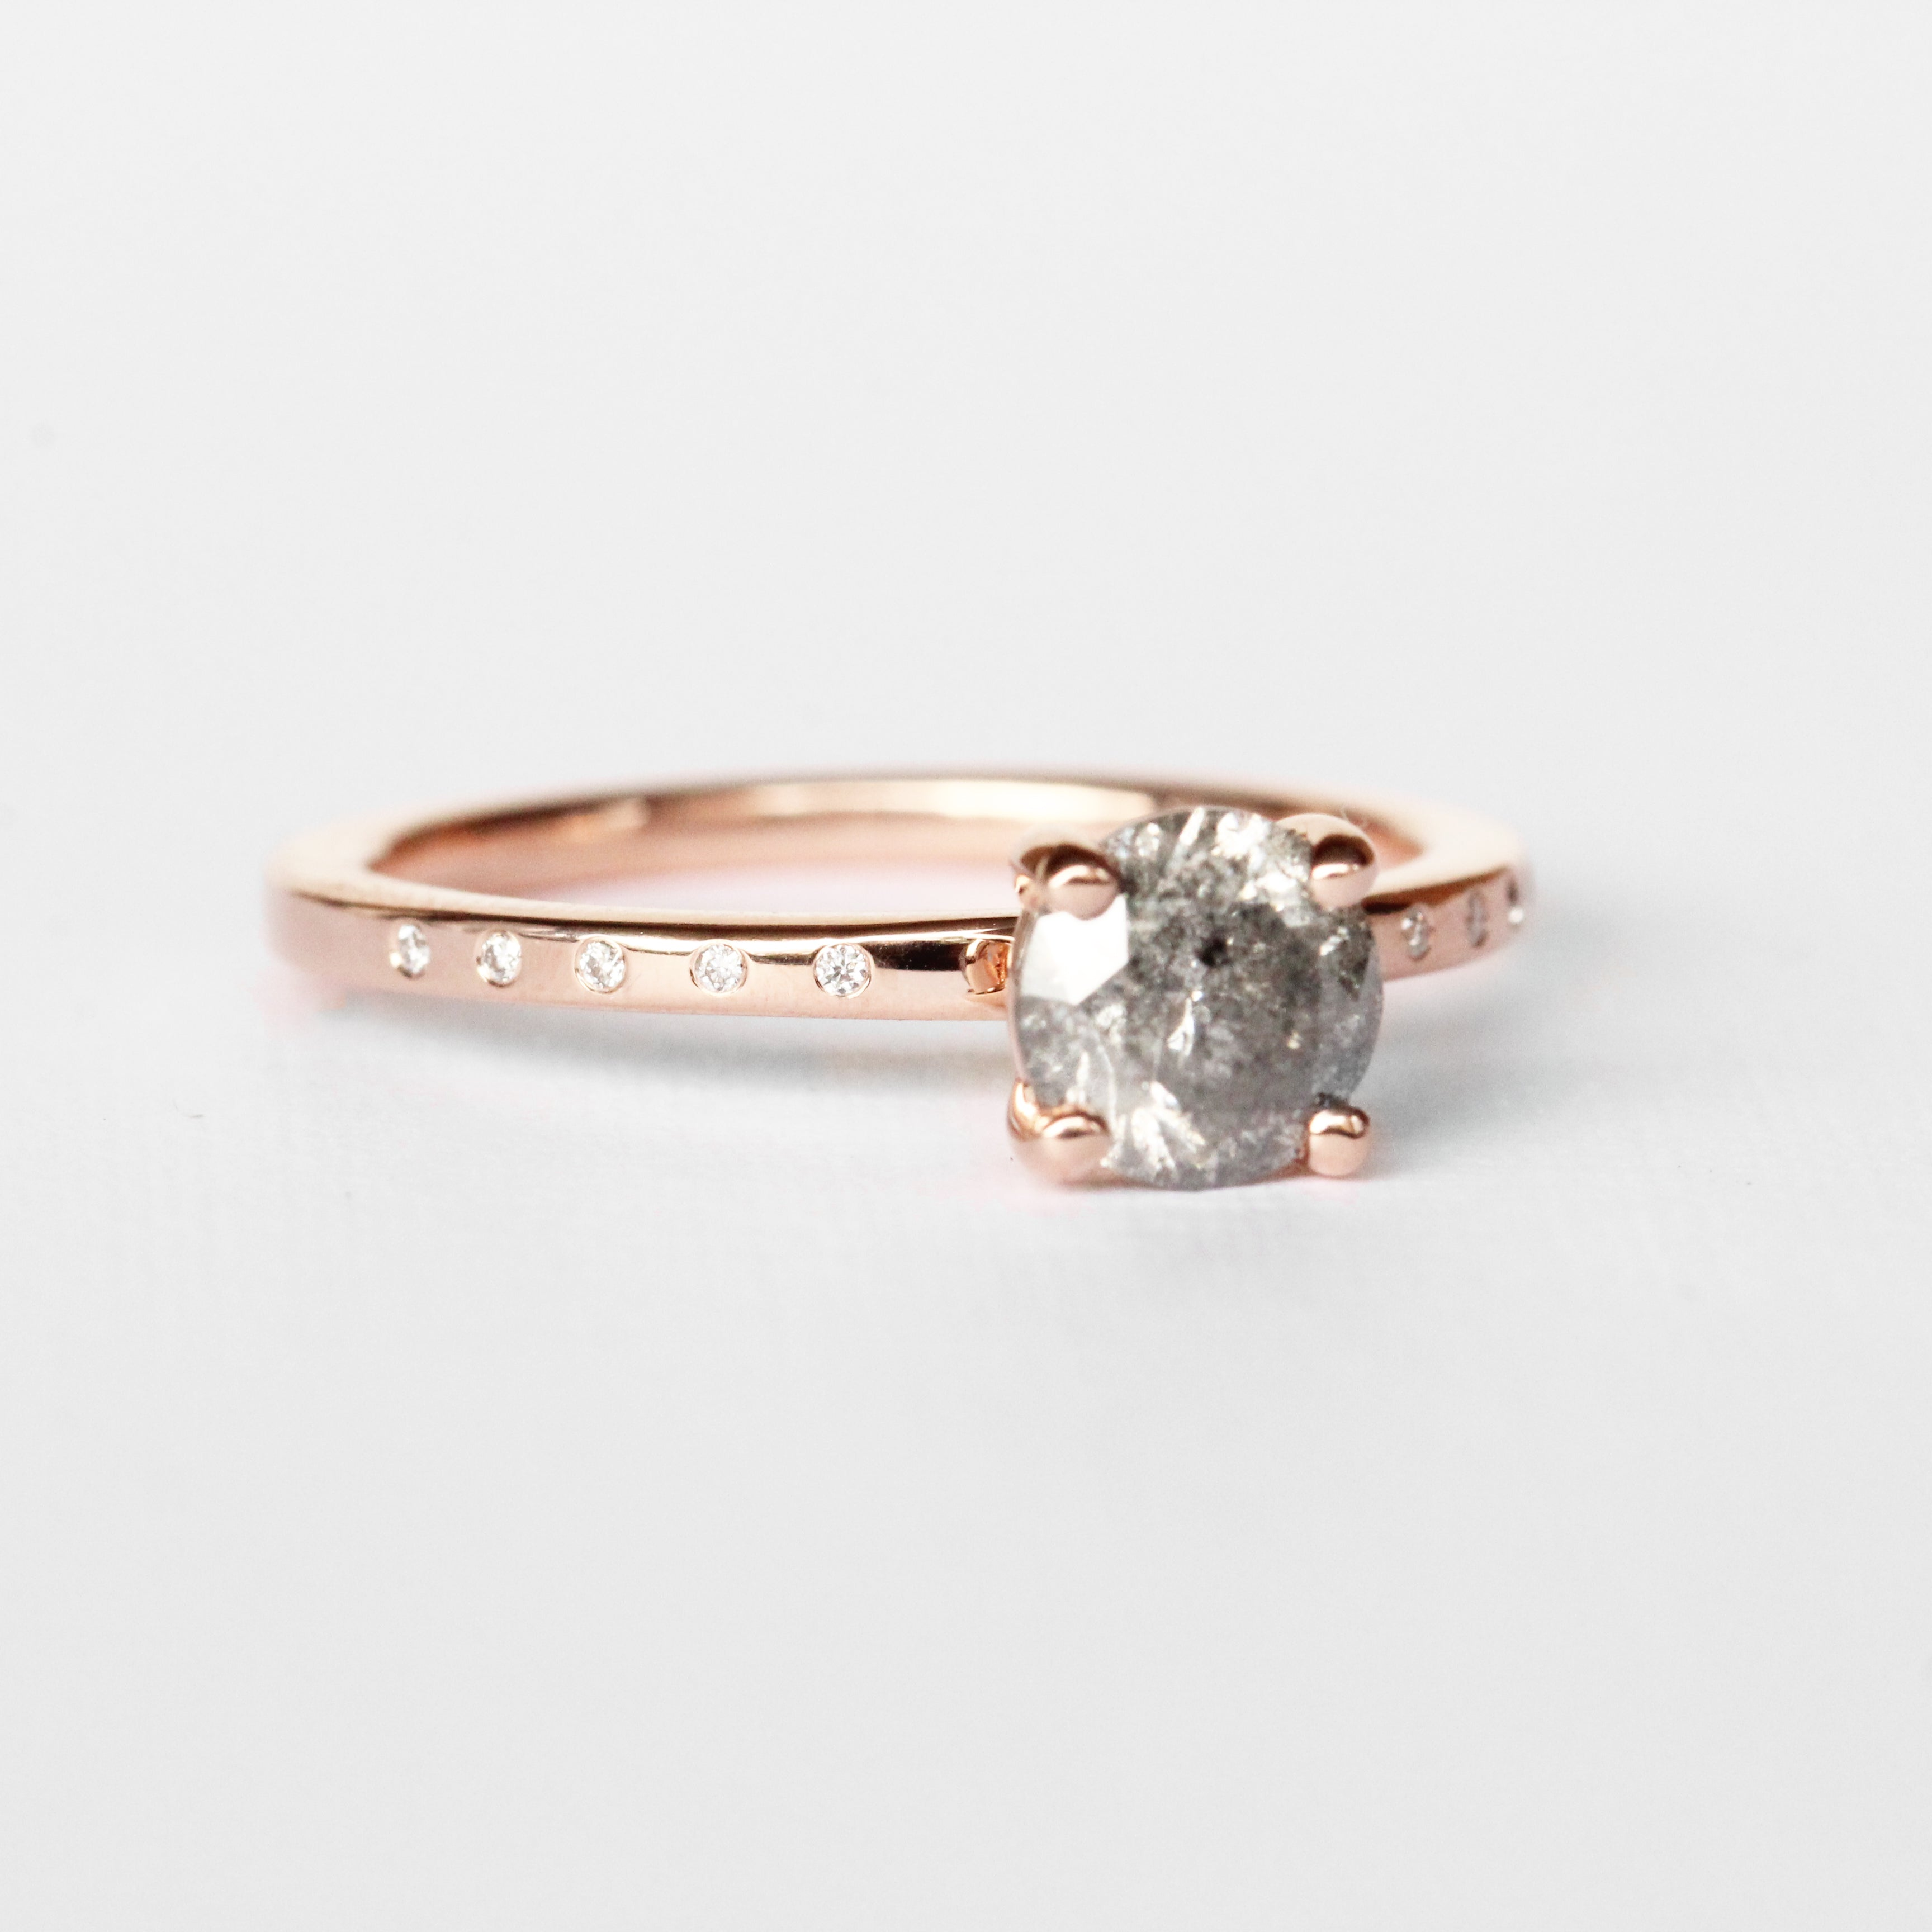 Heath Ring with an .85 ct Celestial Diamond in 14k Rose Gold - Ready to Size and Ship - Celestial Diamonds ® by Midwinter Co.